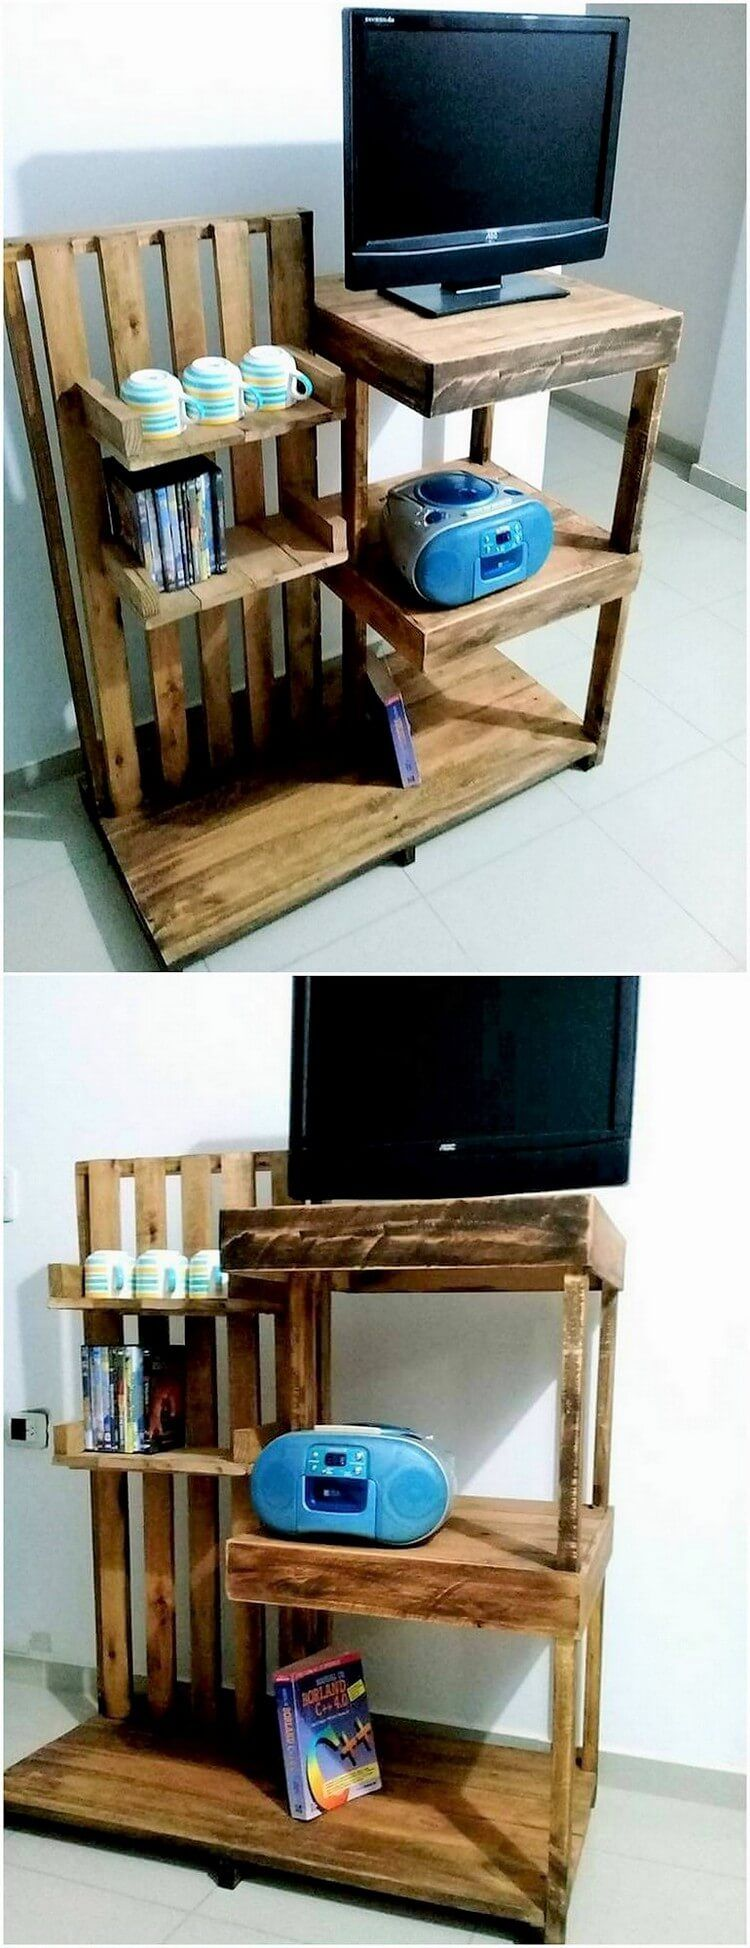 If you have some extra wood pallet